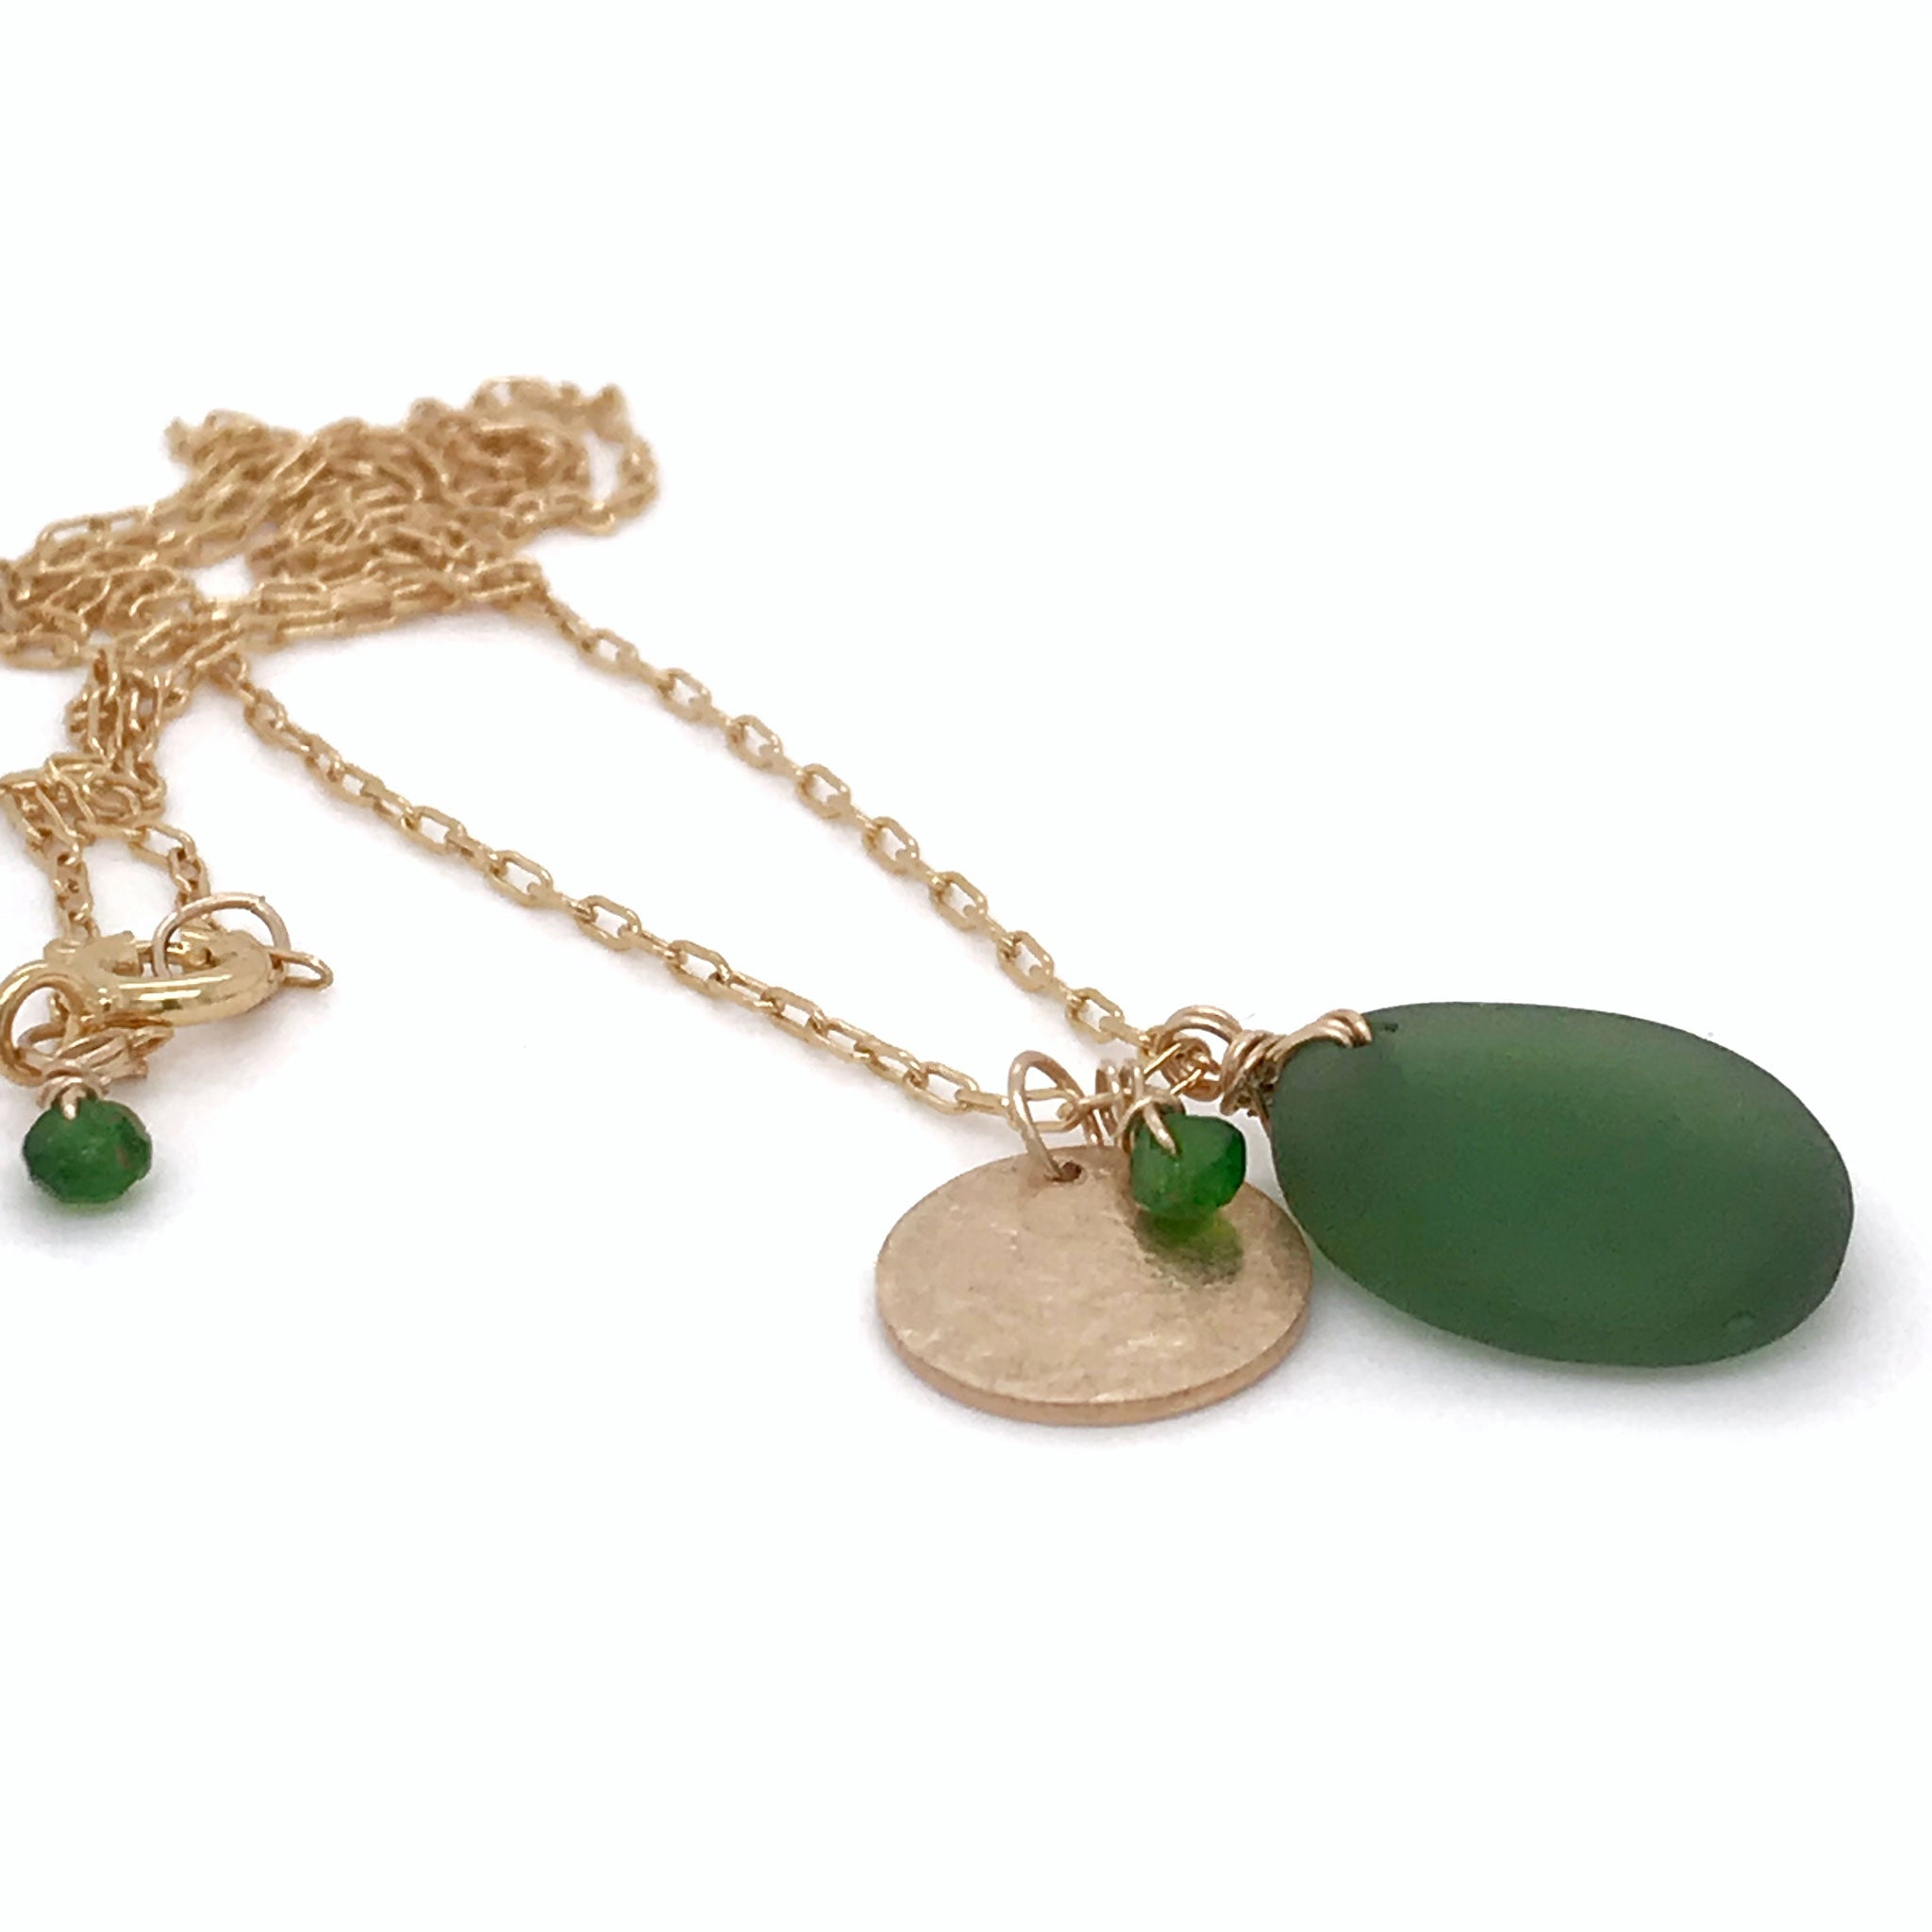 green seaglass gold necklace with gold disc charm and tsavorite stones kriket broadhurst jewellery